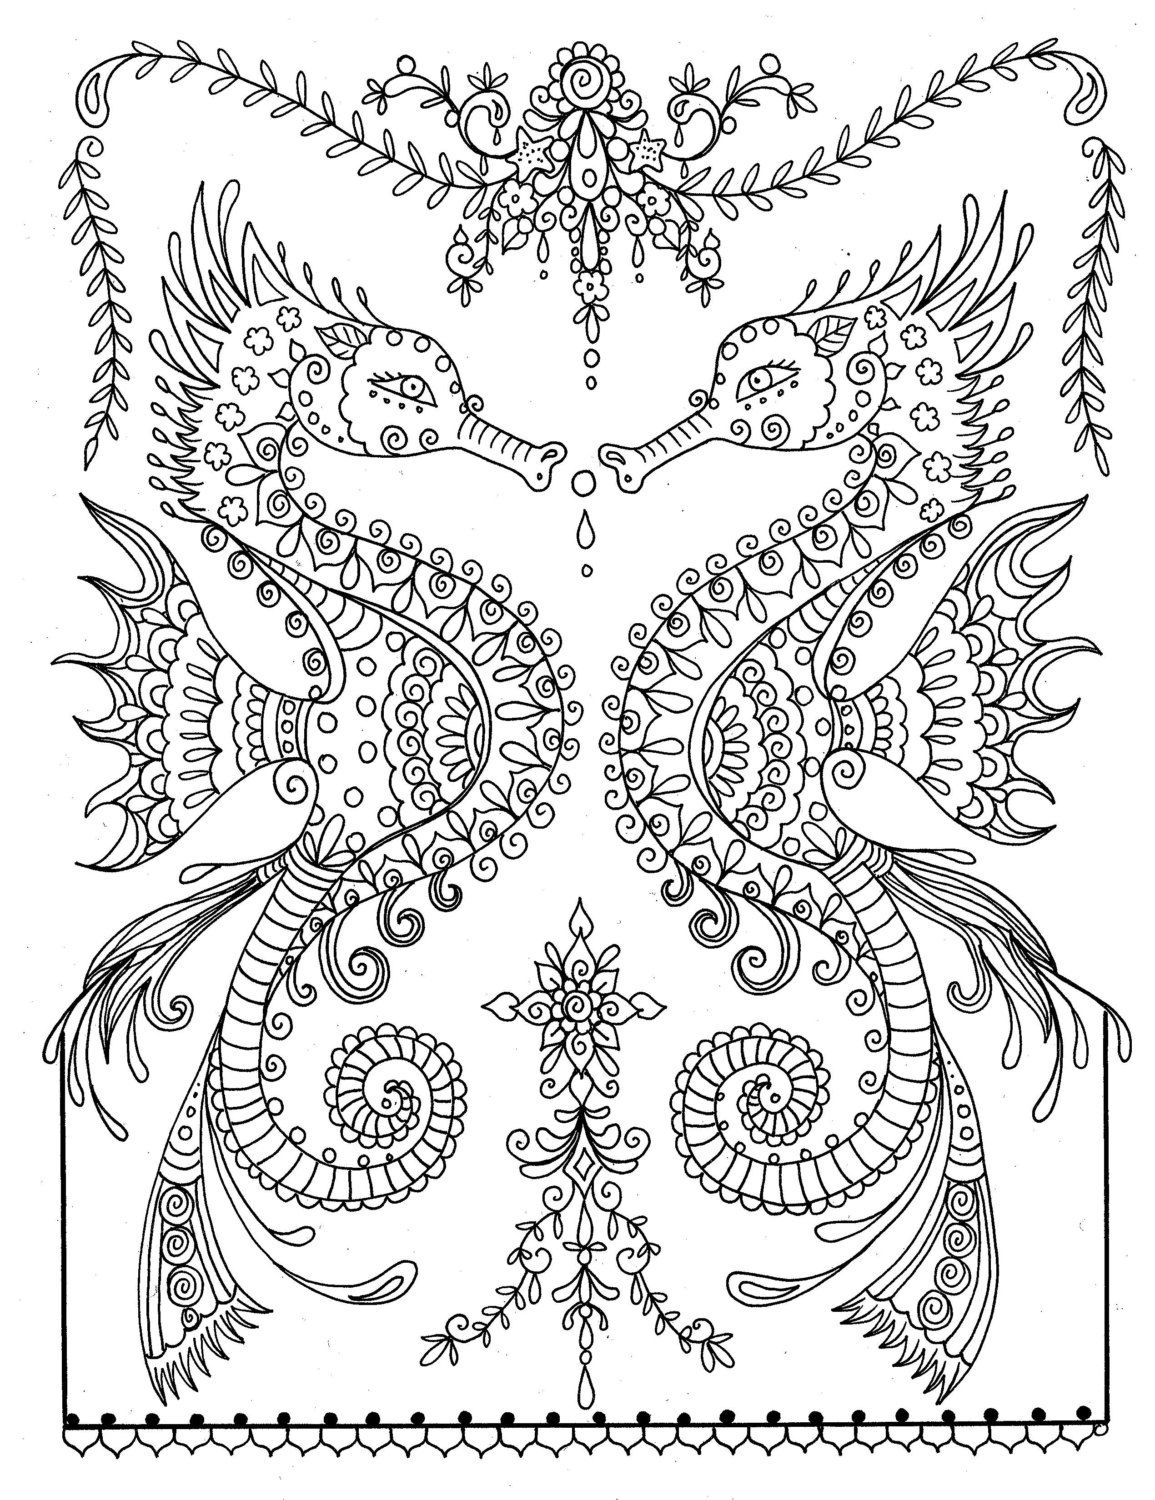 Printable Sea Horse Coloring Page Instant By ChubbyMermaid On Etsy